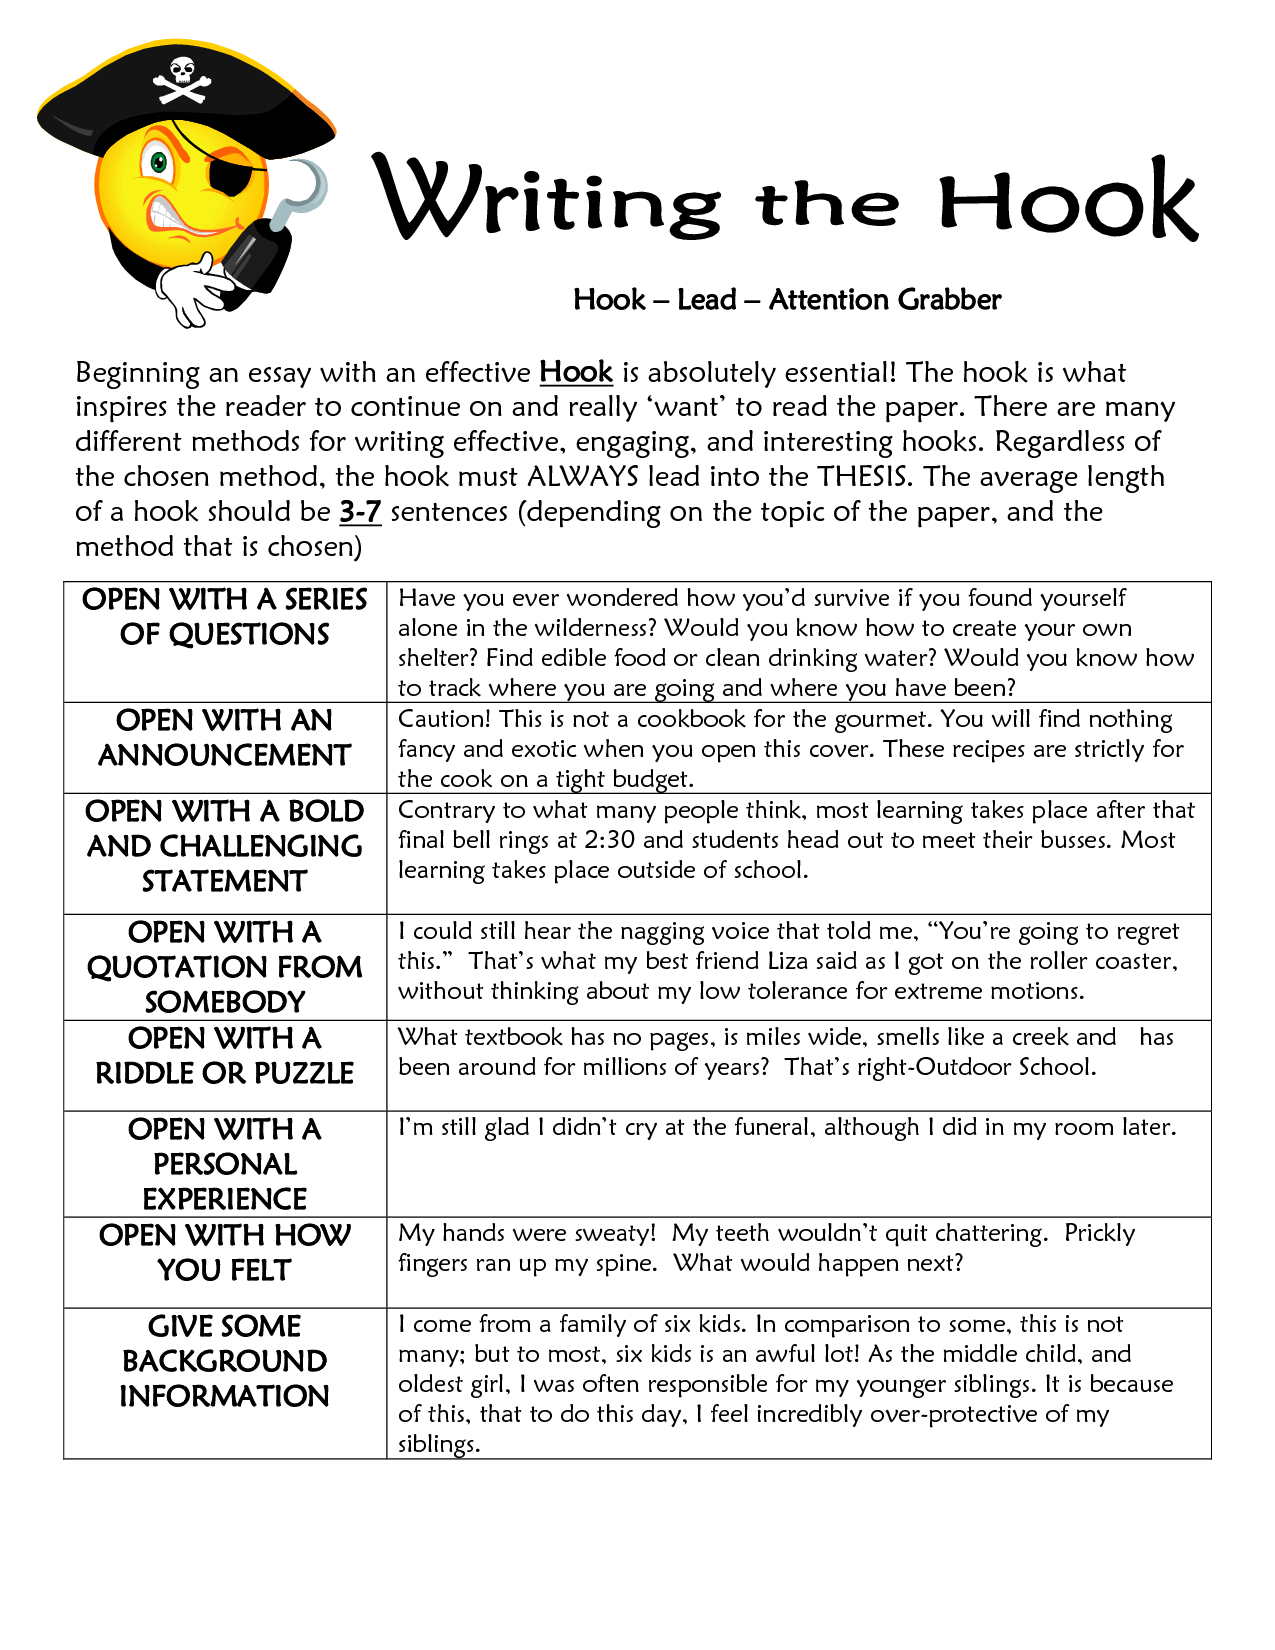 45 Easy Essay Hooks for How to Write a Good Introduction